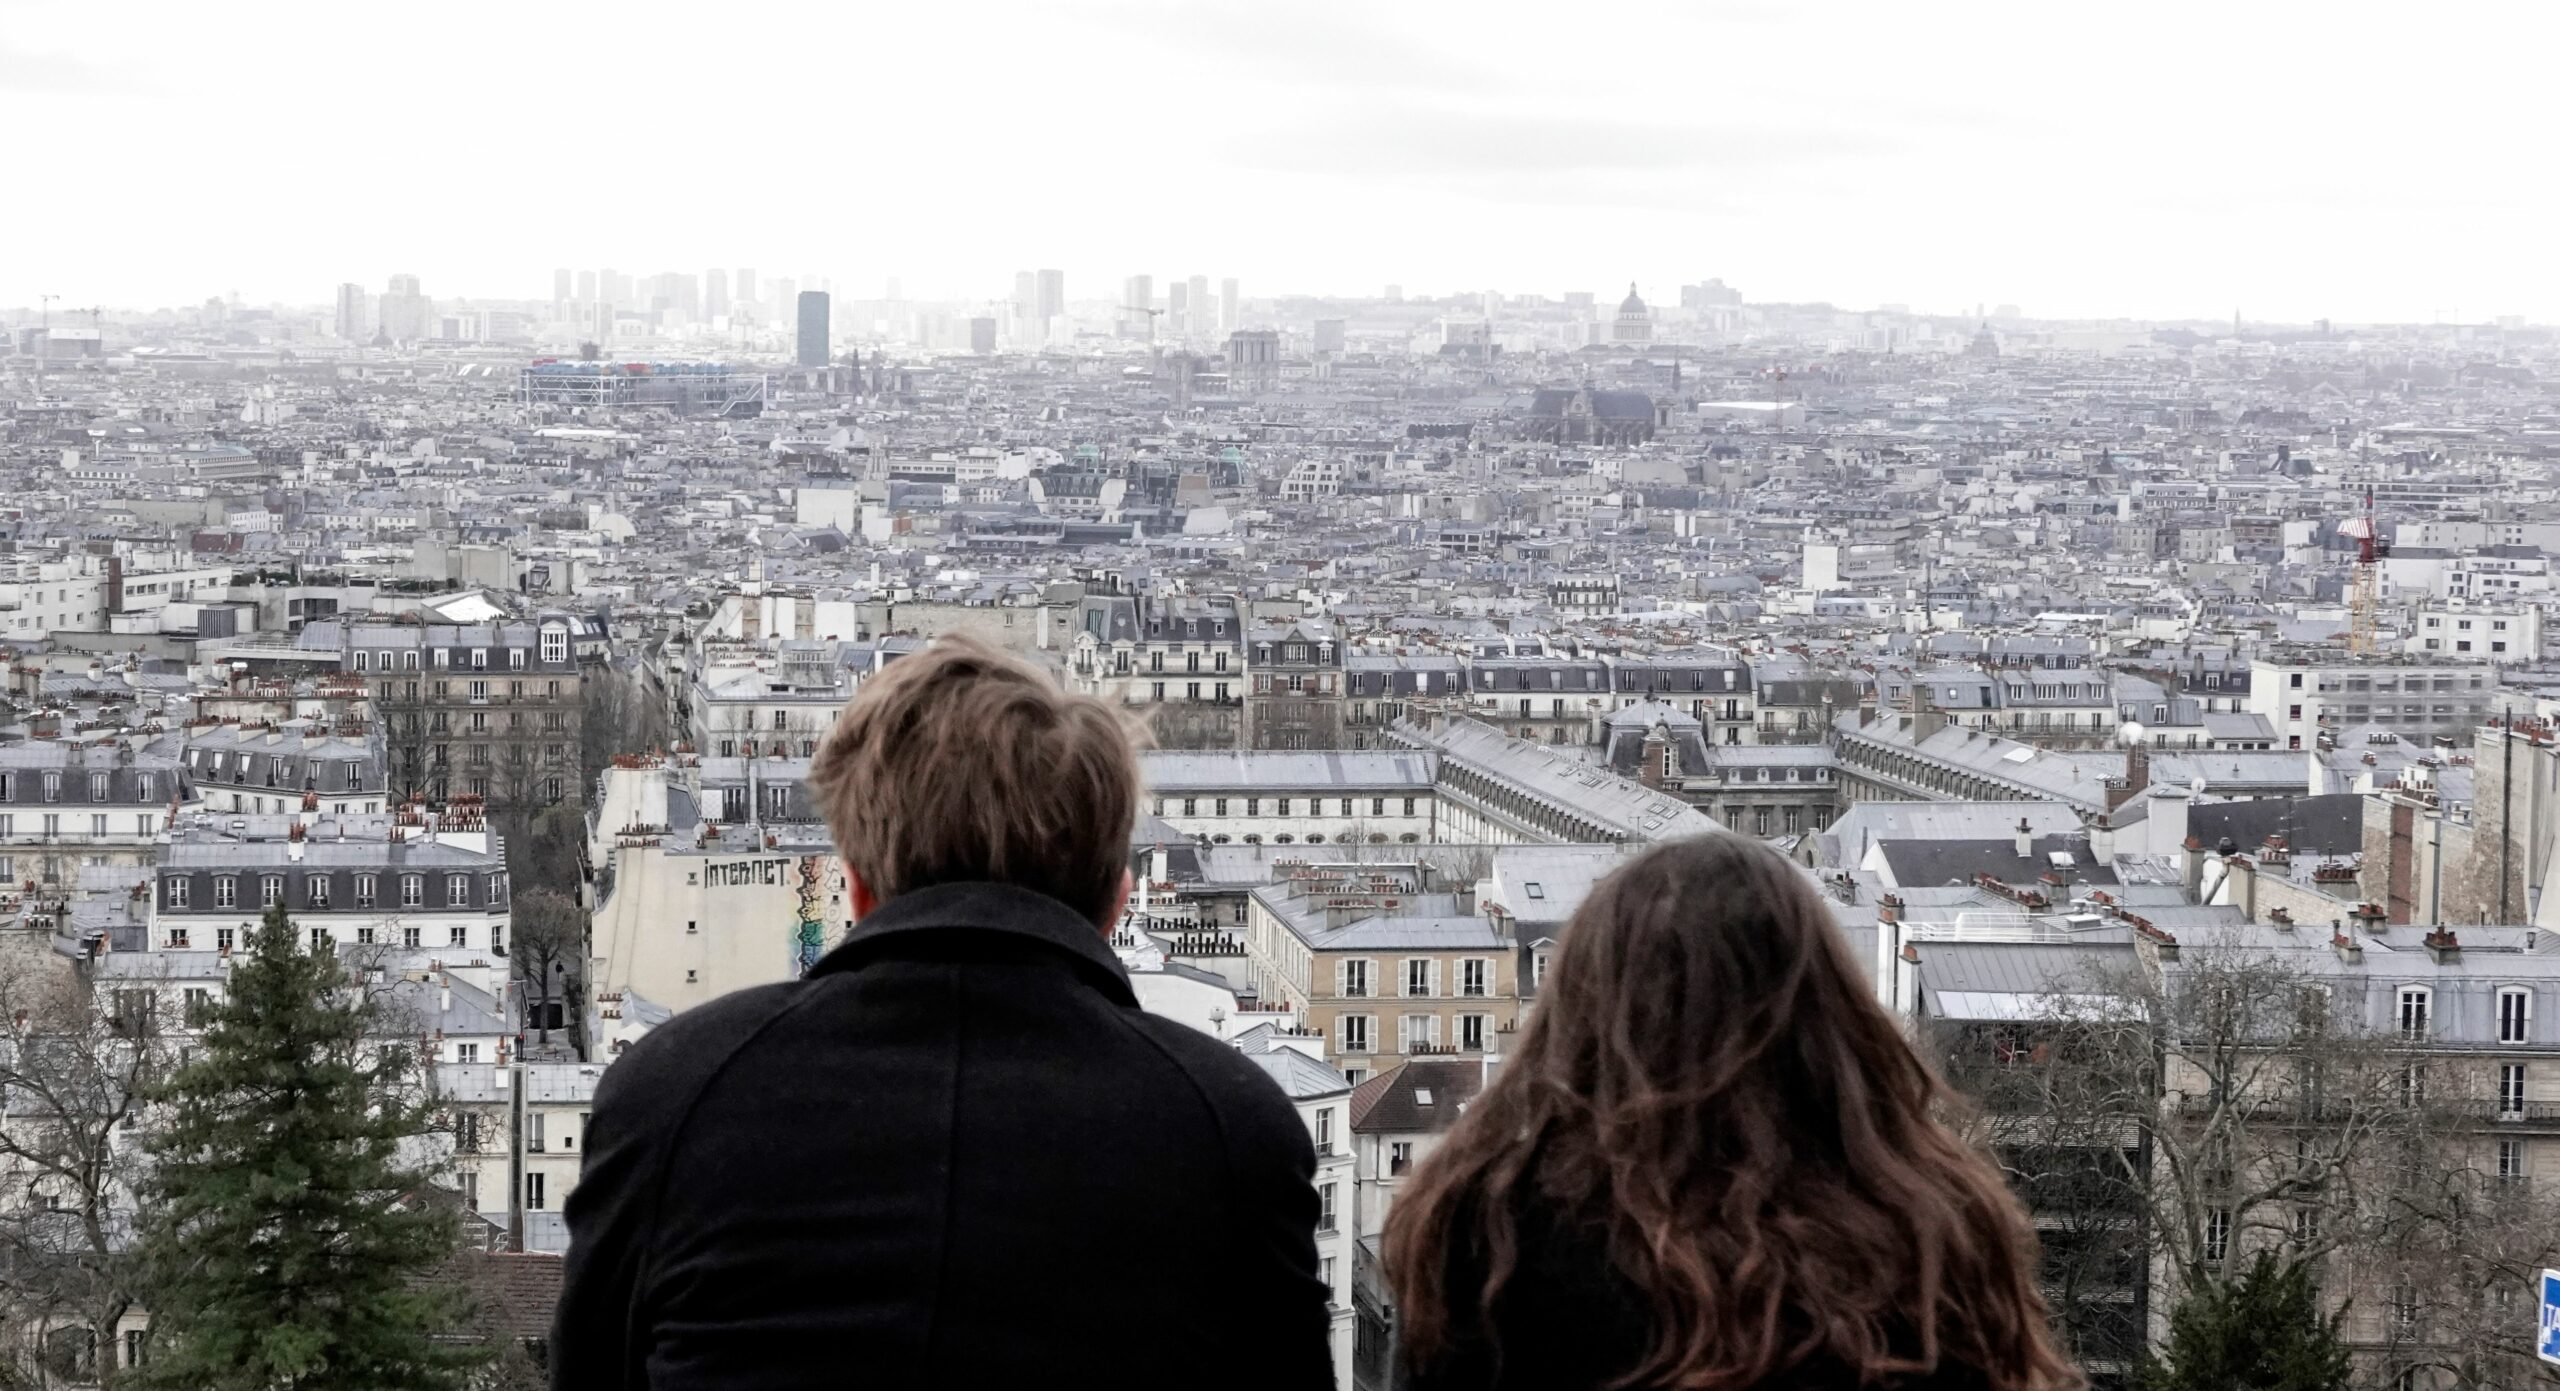 A couple look at Paris skyline from the Montmartre area in Paris, on March 15, 2020. Credit: Stefano Rellandini/AFP via Getty Images